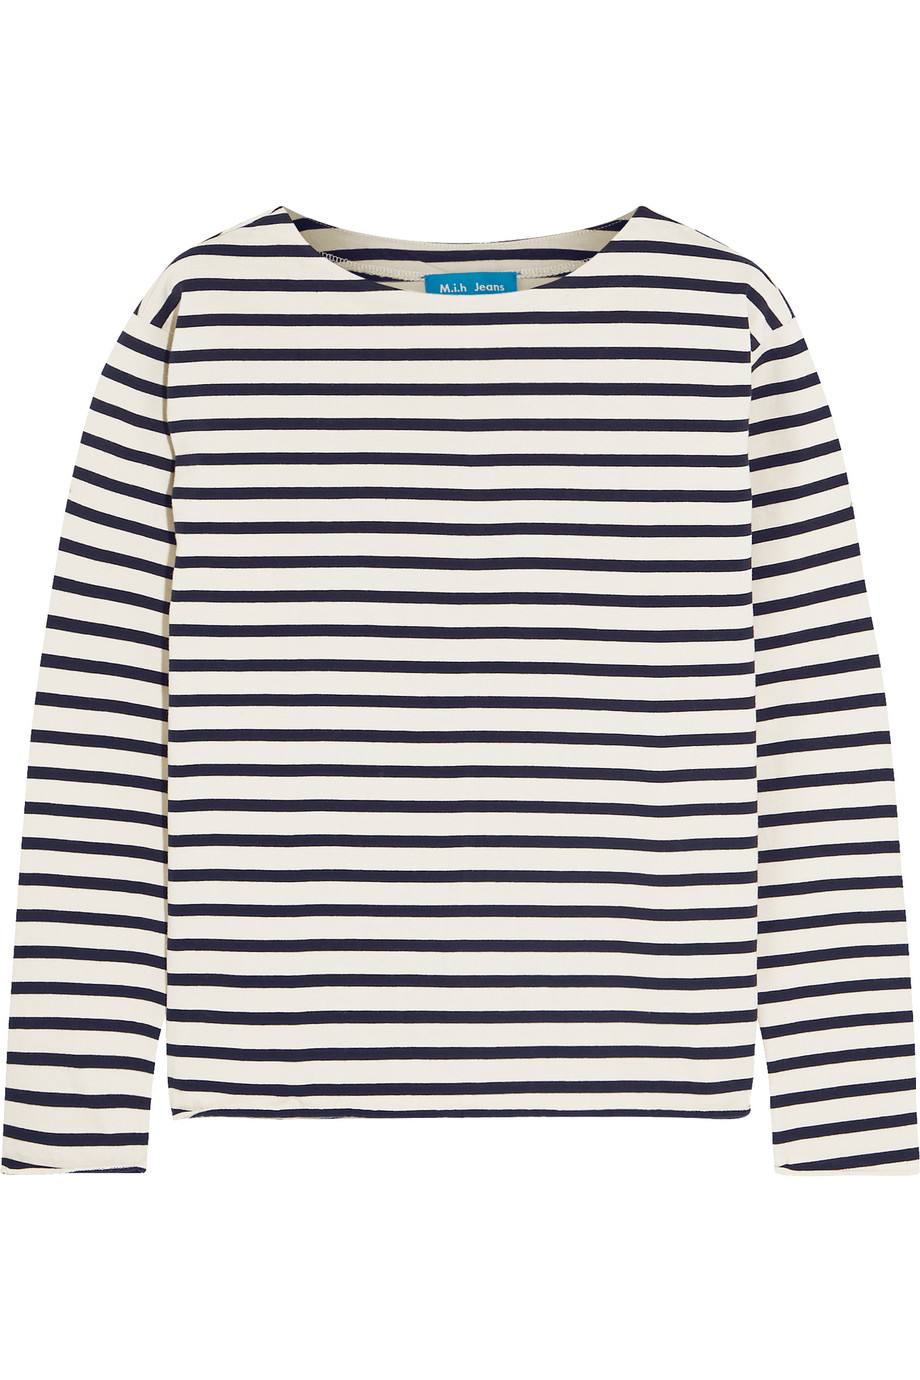 Mih Jeans Striped Cotton-Jersey Top, White, Women's